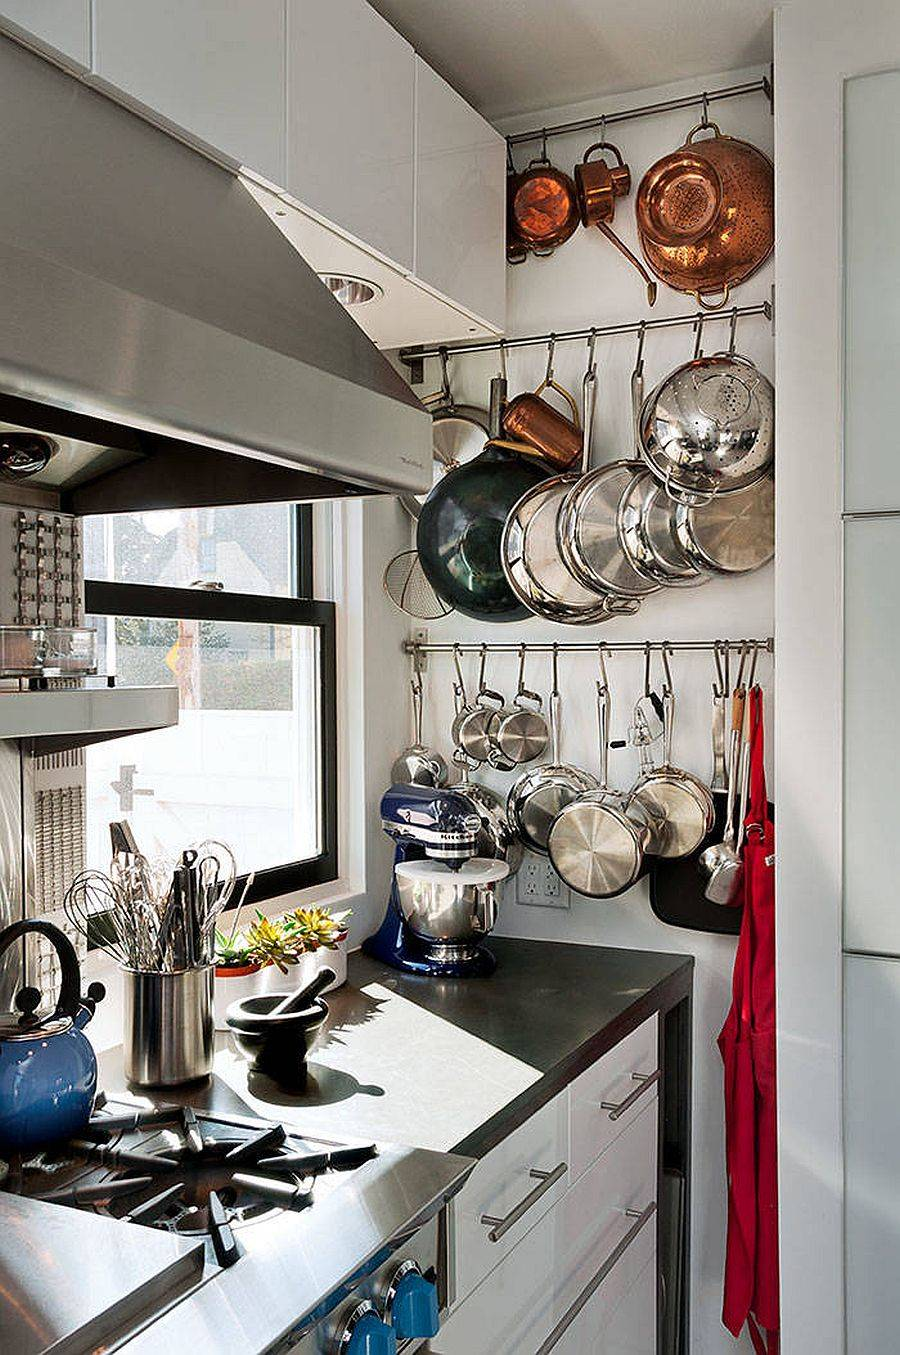 Corner-space-is-utilized-to-the-hilt-in-this-tiny-white-kitchen-with-ergonomic-utility-rails-26970